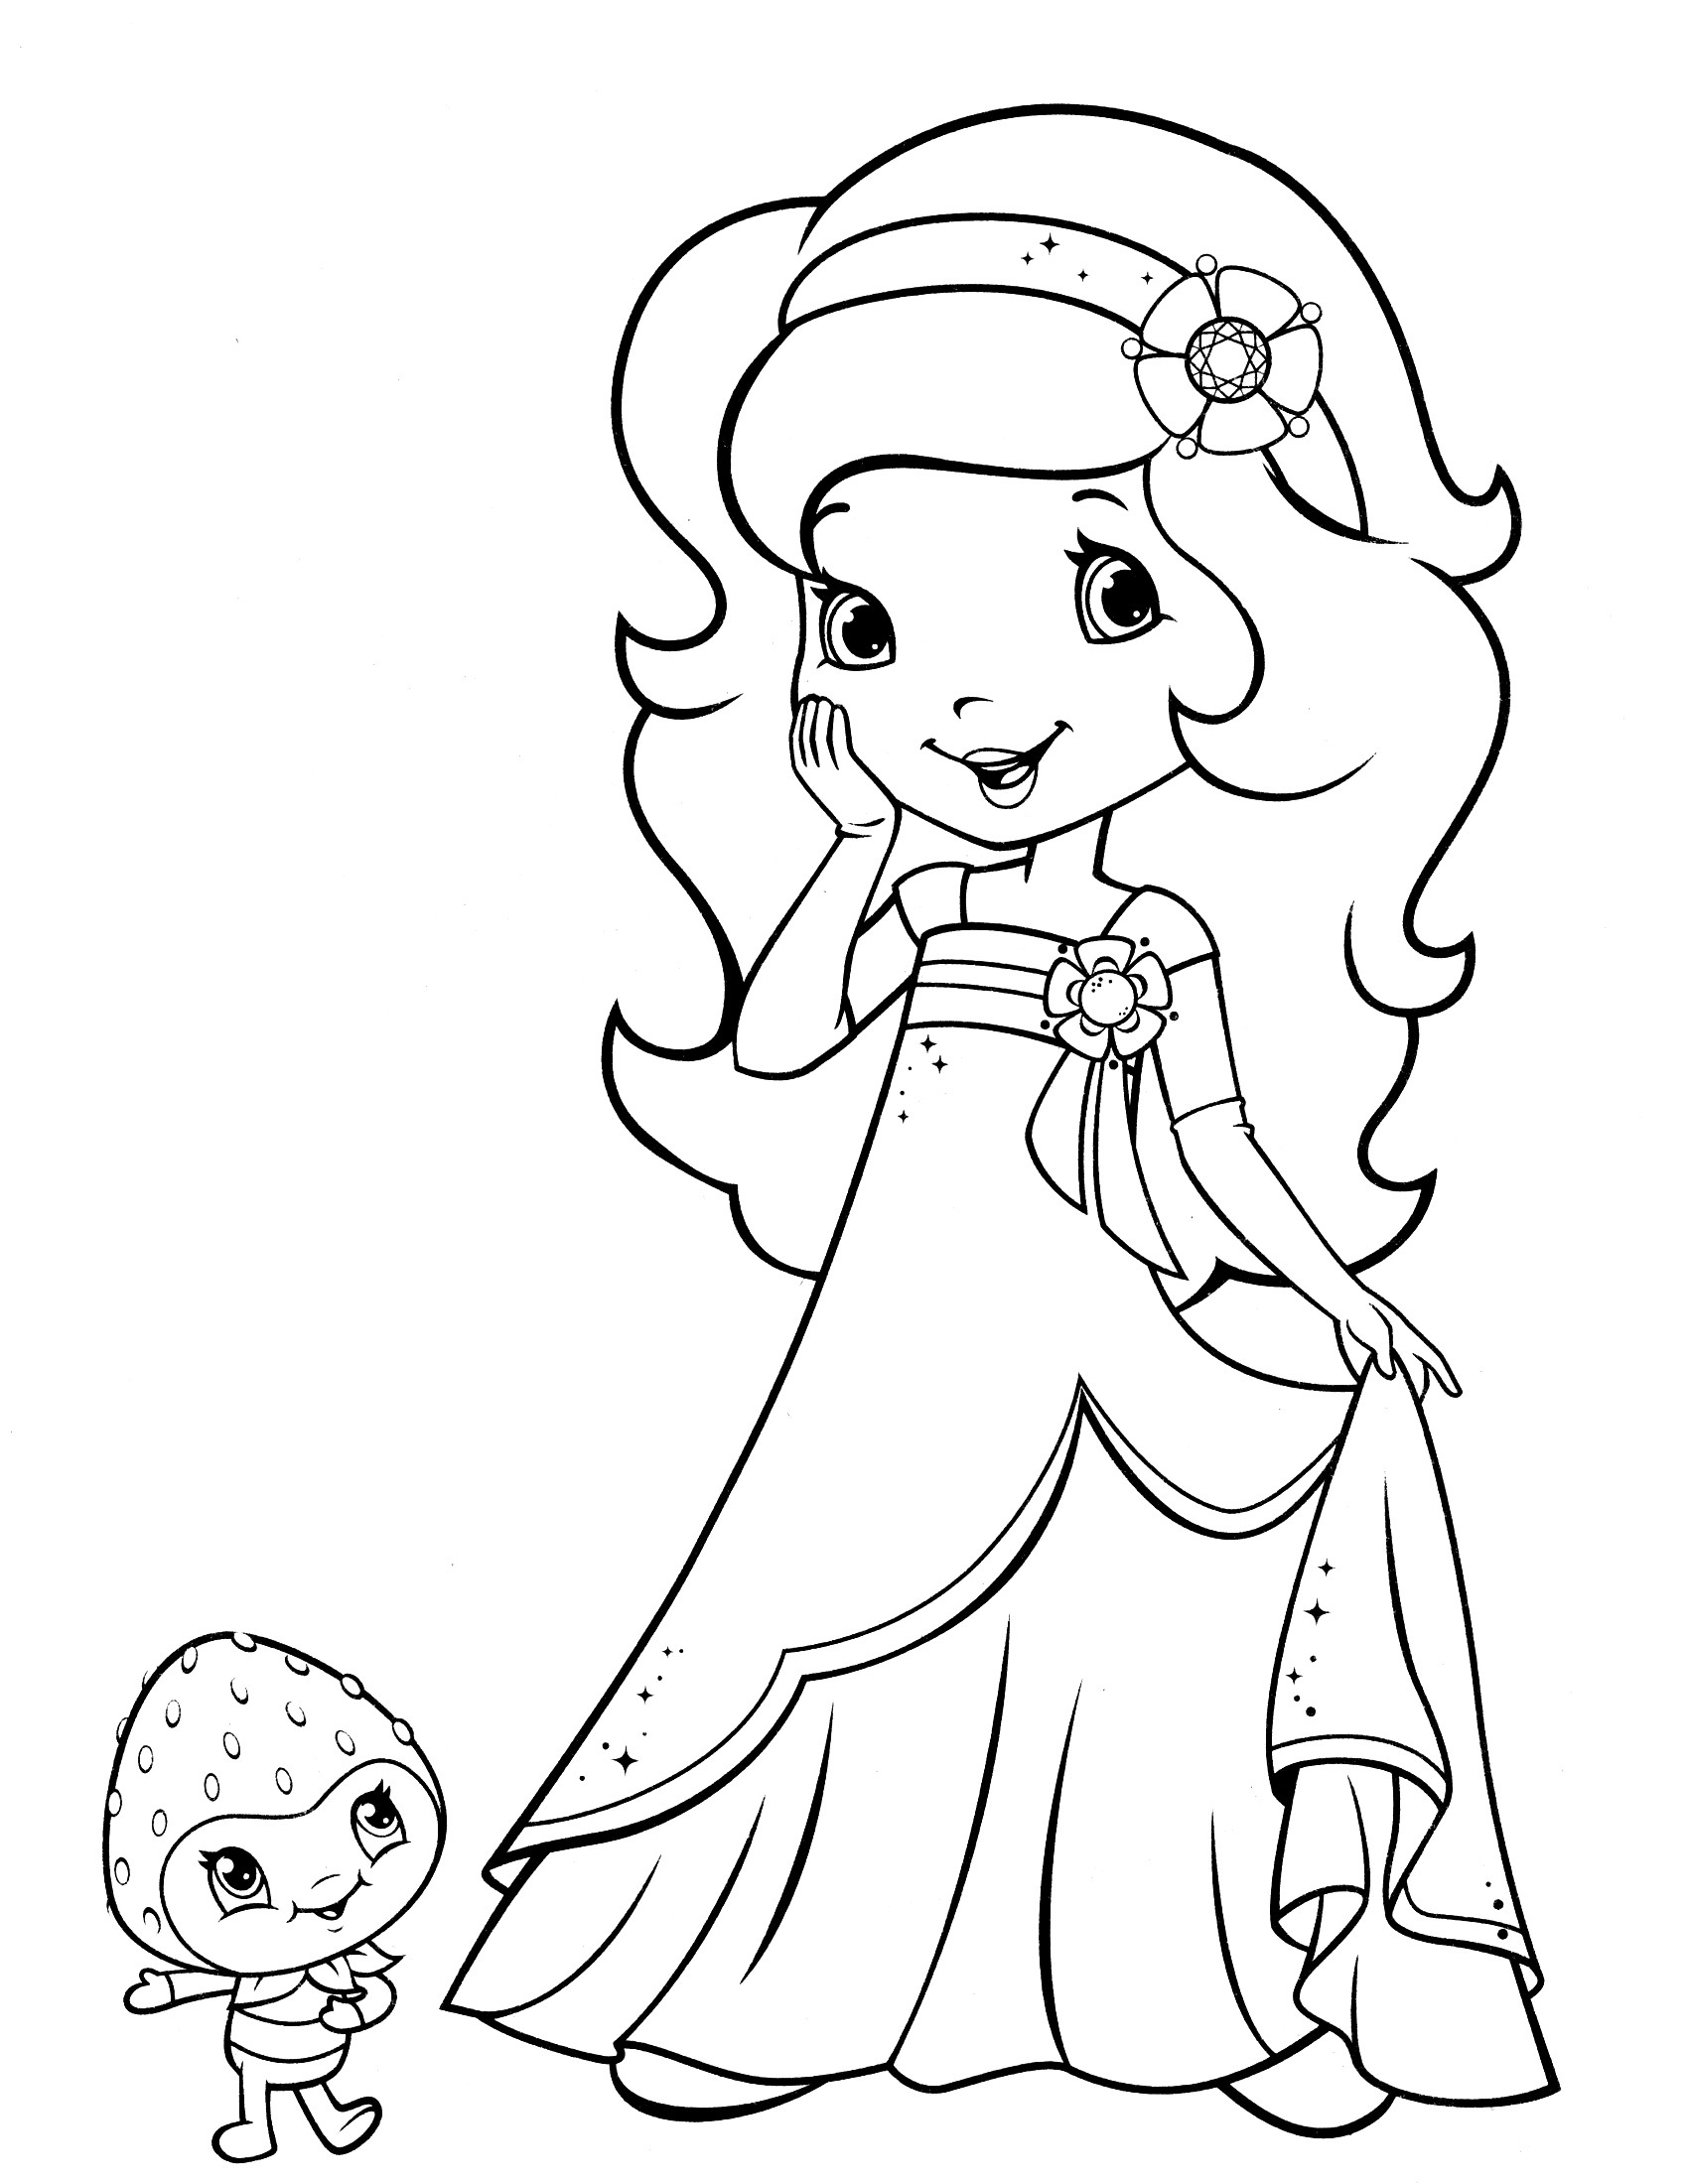 Coloring Sheets For Girls Strawberry Shortcake  Strawberry Shortcake Coloring Pages coloringsuite